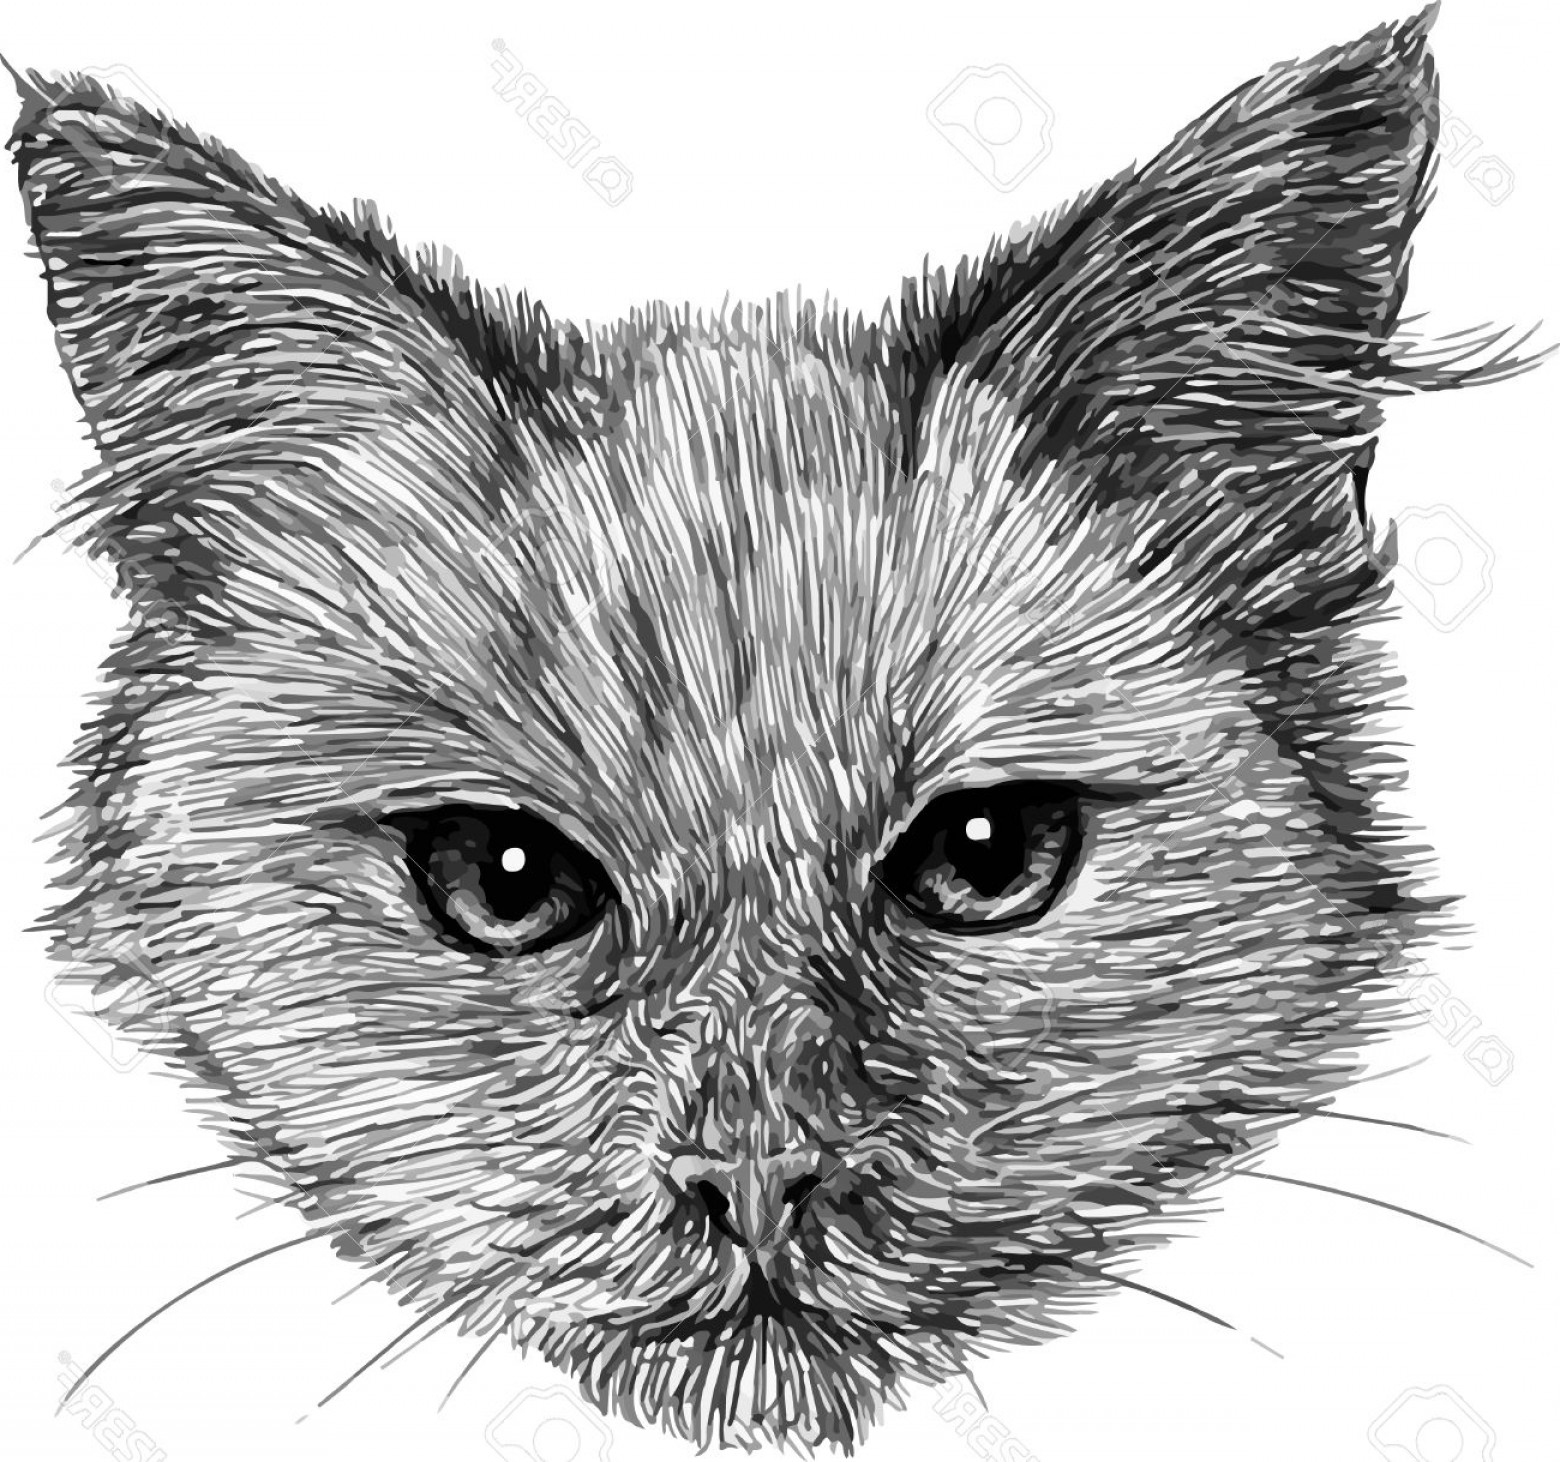 Malee Cat Head Silhouette Vector: Photostock Vector Cat Head Black And White Animal Drawing Illustration